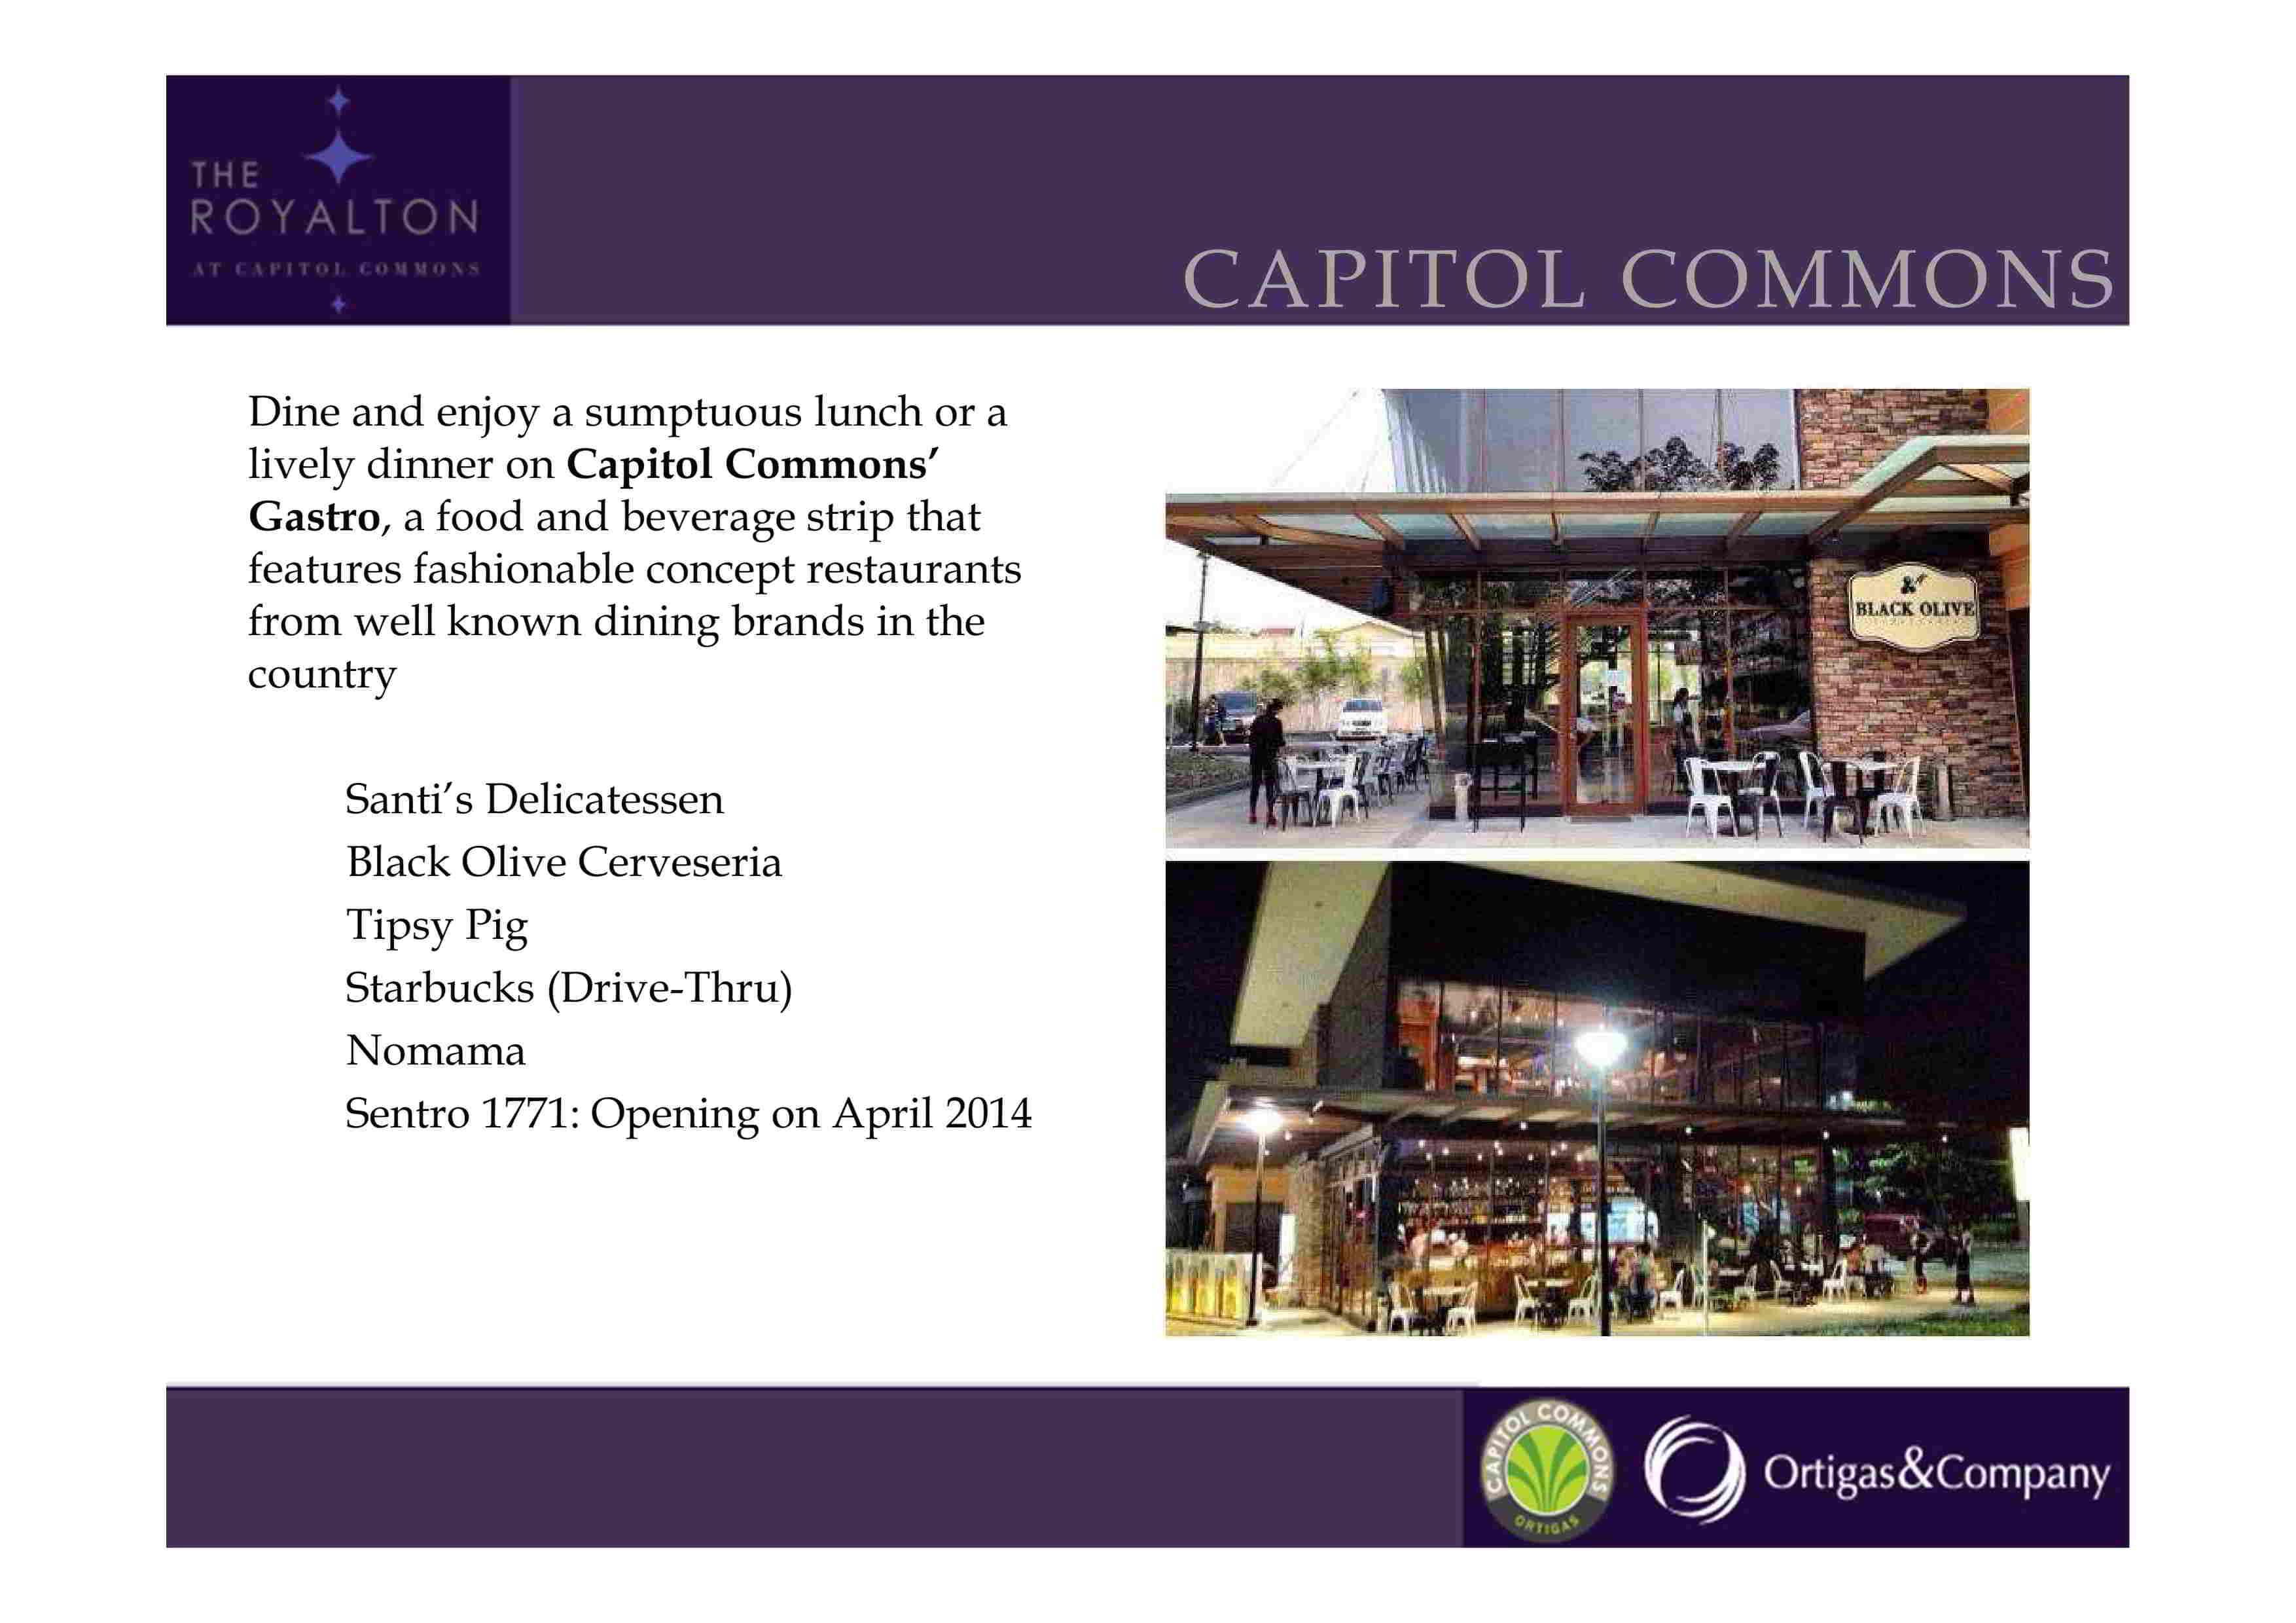 THE ROYALTON CAPITOL COMMONS BY ORTIGAS AND COMPANY